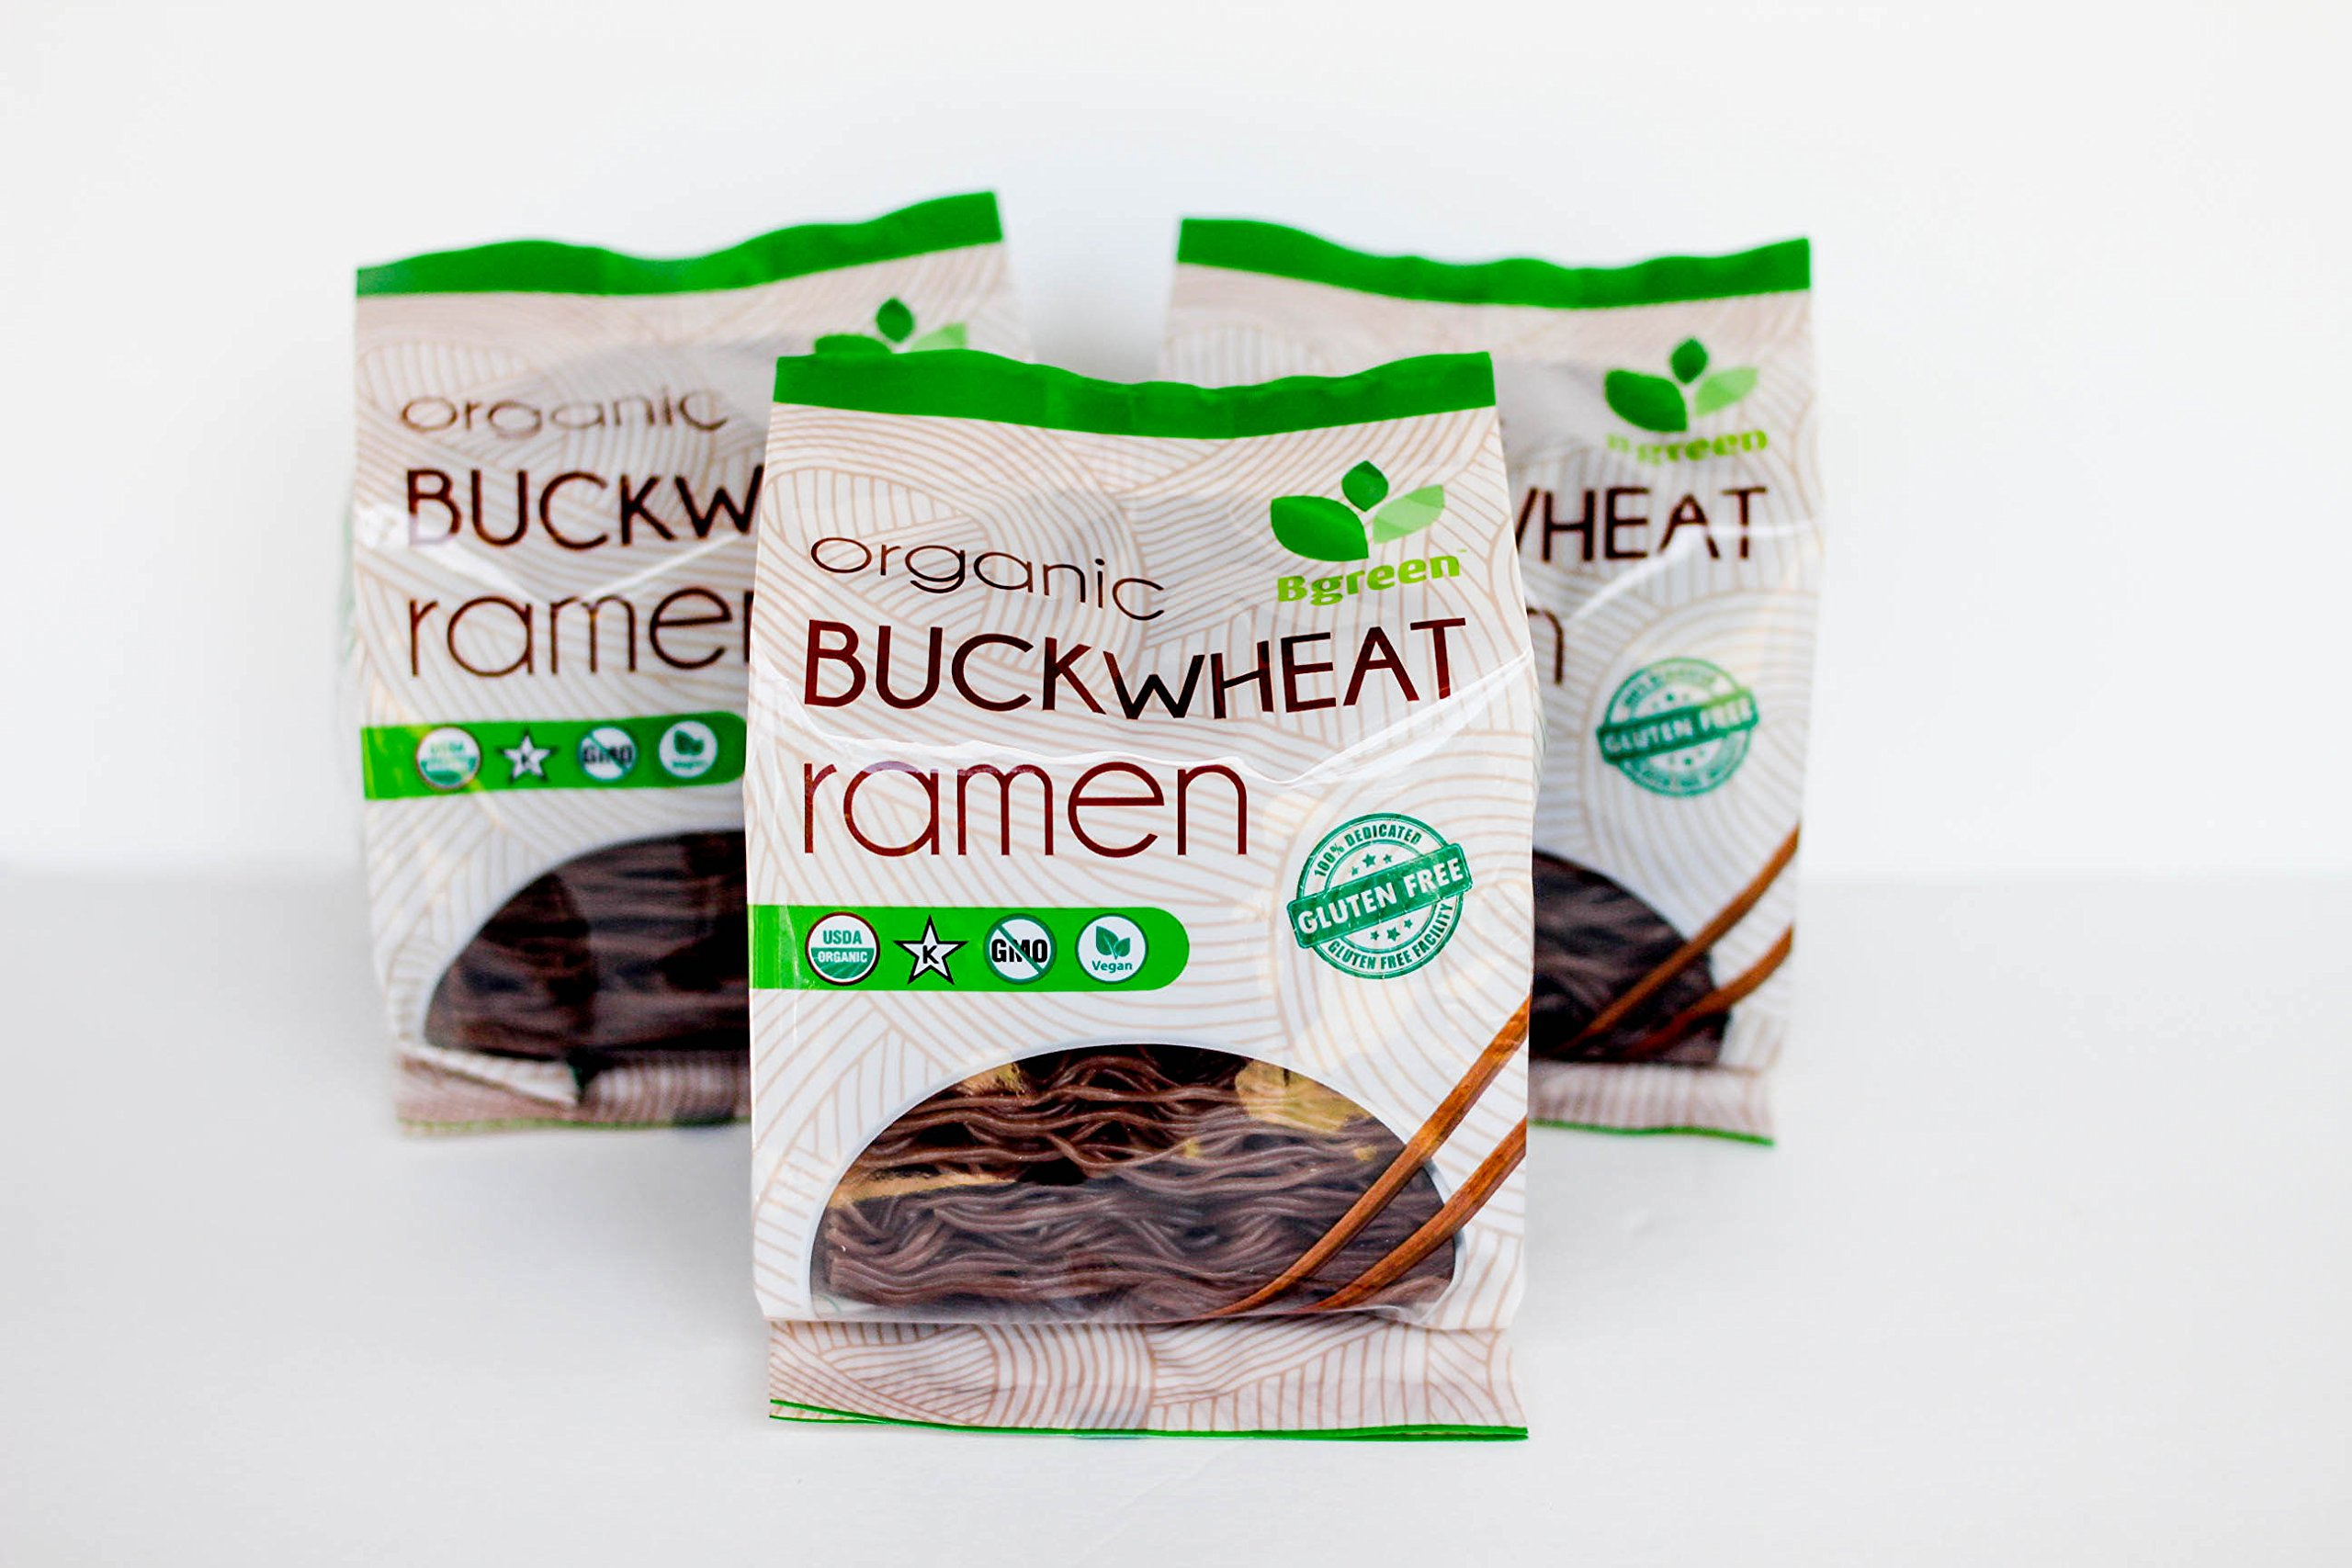 3 Pack Certified Organic Buckwheat Ramen Gluten Free Noodles Non-GMO Vegan and Kosher by Smart One Products